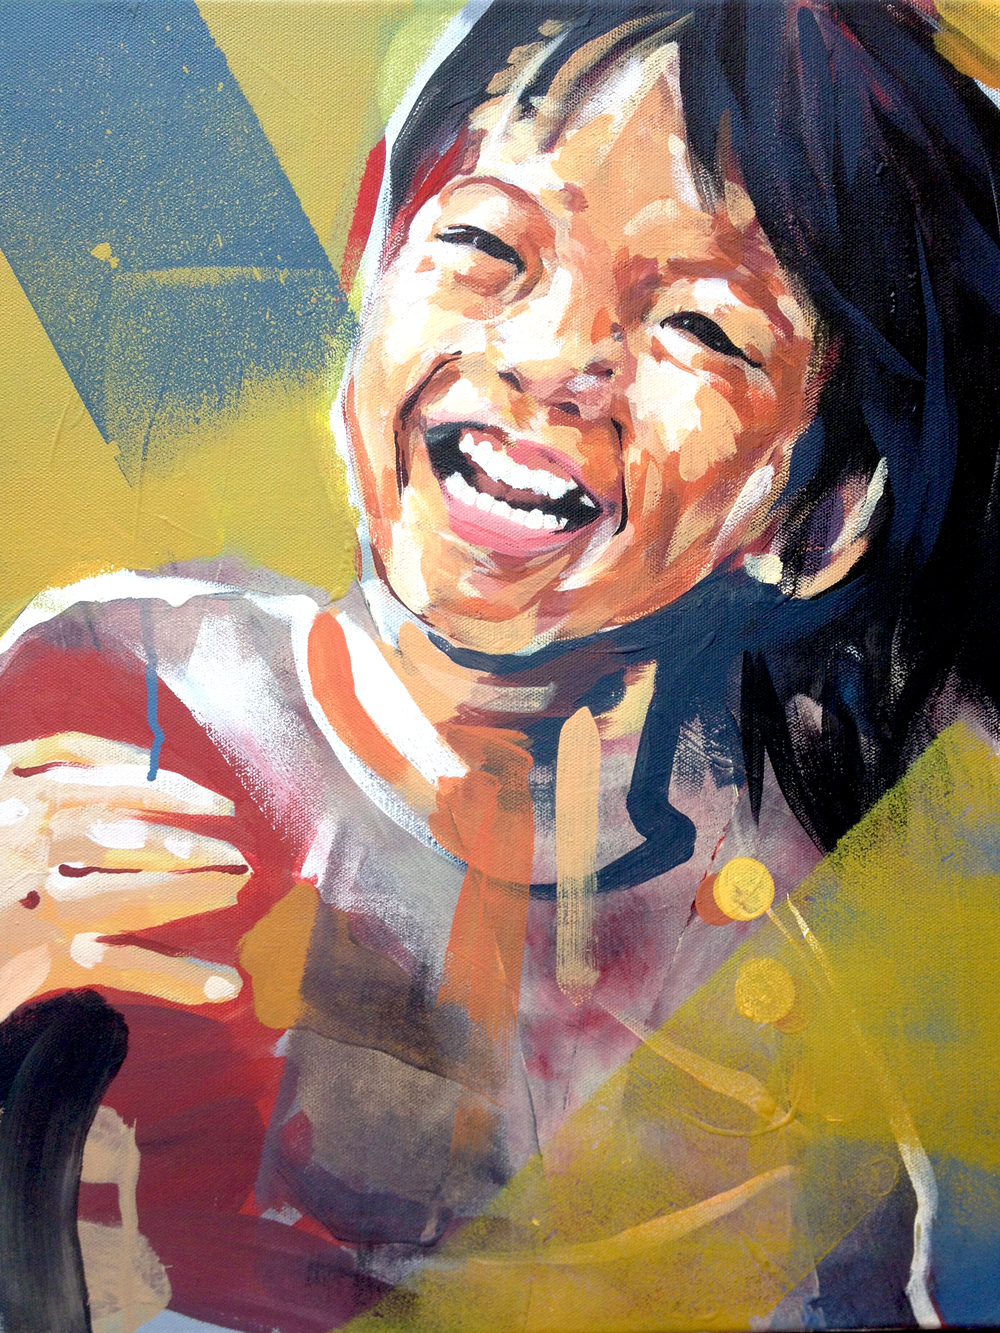 "Series of Portraits of the abandoned and disabled children in China under the care of International China Concern.   2013  15.5"" x 19.5""  acrylic on canvas  $850 (50% of proceeds will be donated to caring for disabled and abandoned children in China)"